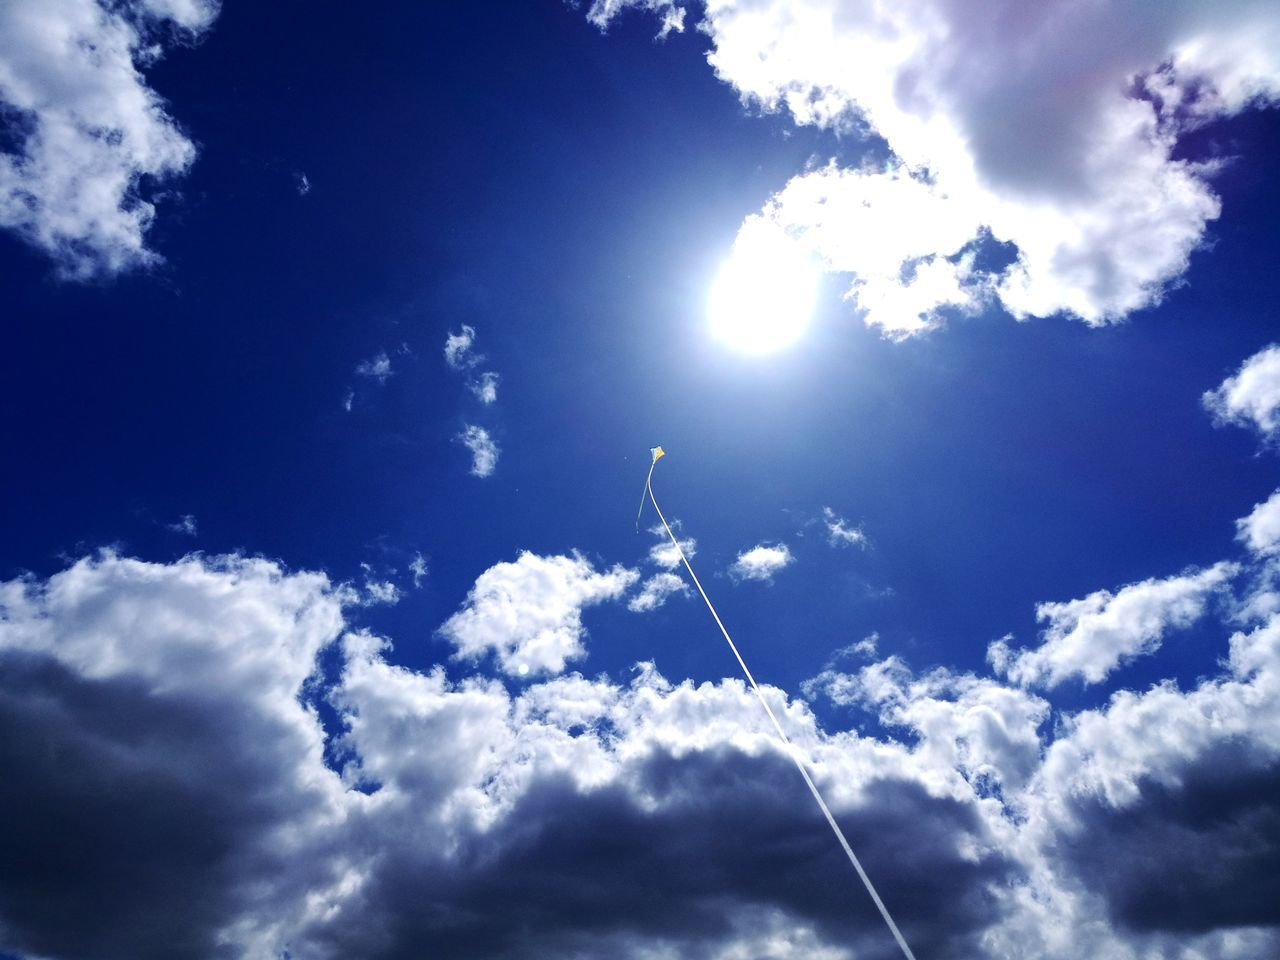 Ascending to sun... Sky Outdoors Low Angle View Cloud - Sky Nature Day EyeEmNewHere Sky Only Blue Flying Beauty In Nature Hook Arena Epsom England London Epsom And Ewell Kite Beauty In Nature Freshness Landscape Cold Temperature Flying High Flying Kite Flying Kites Flying A Kite